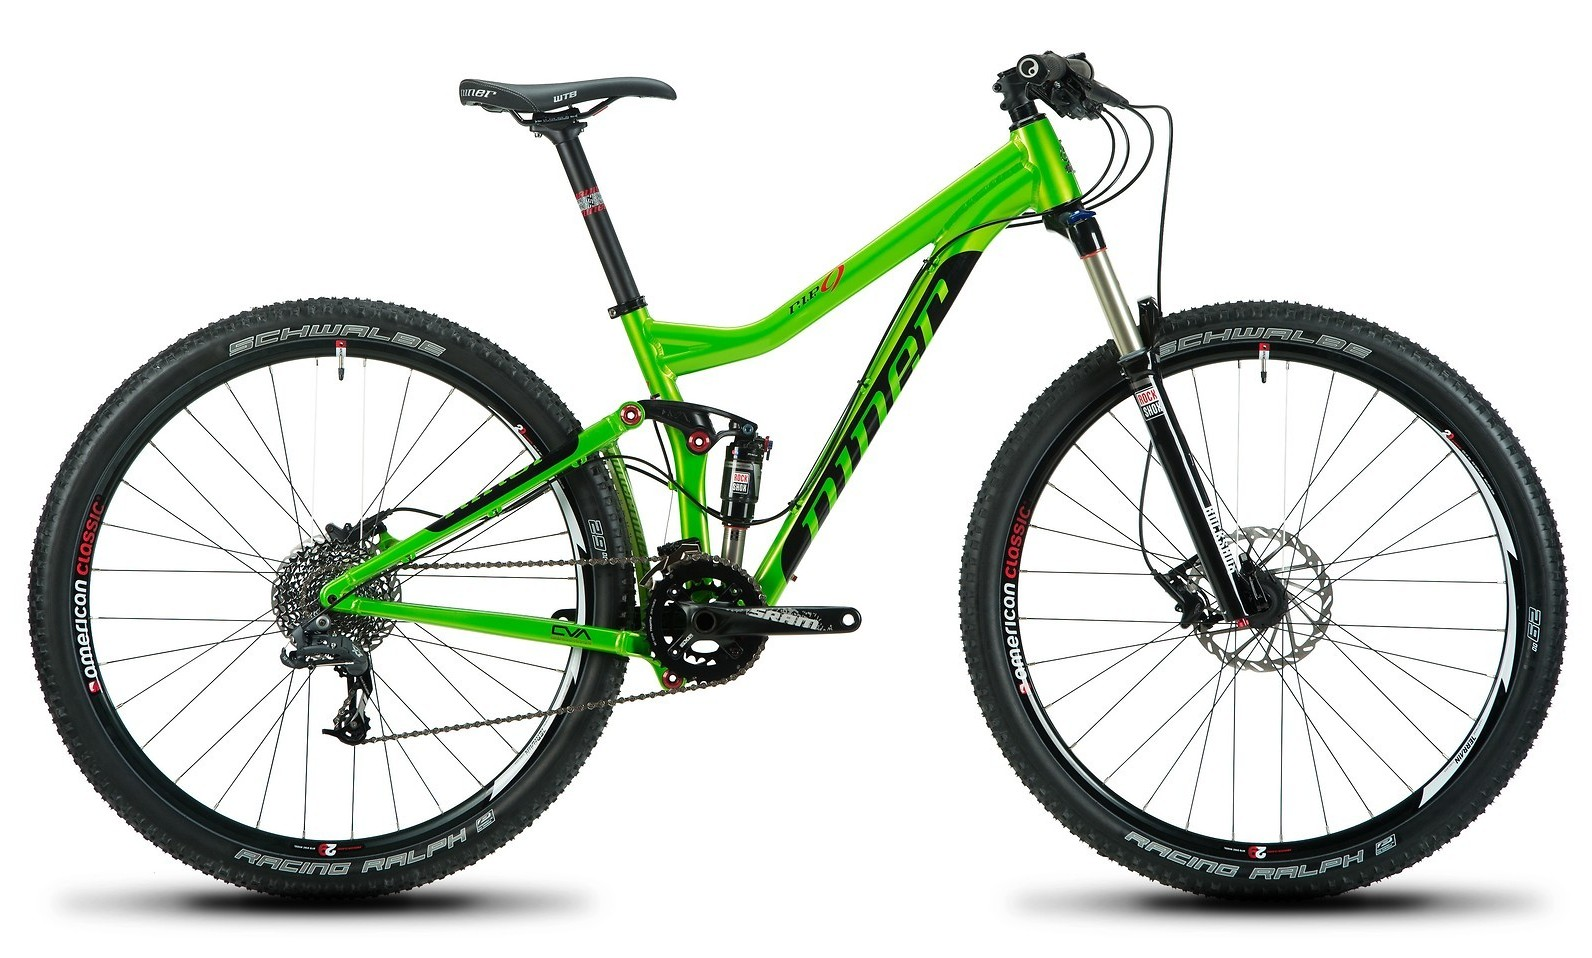 RIP9 NinerGreen Bike (Differs from Review Build)